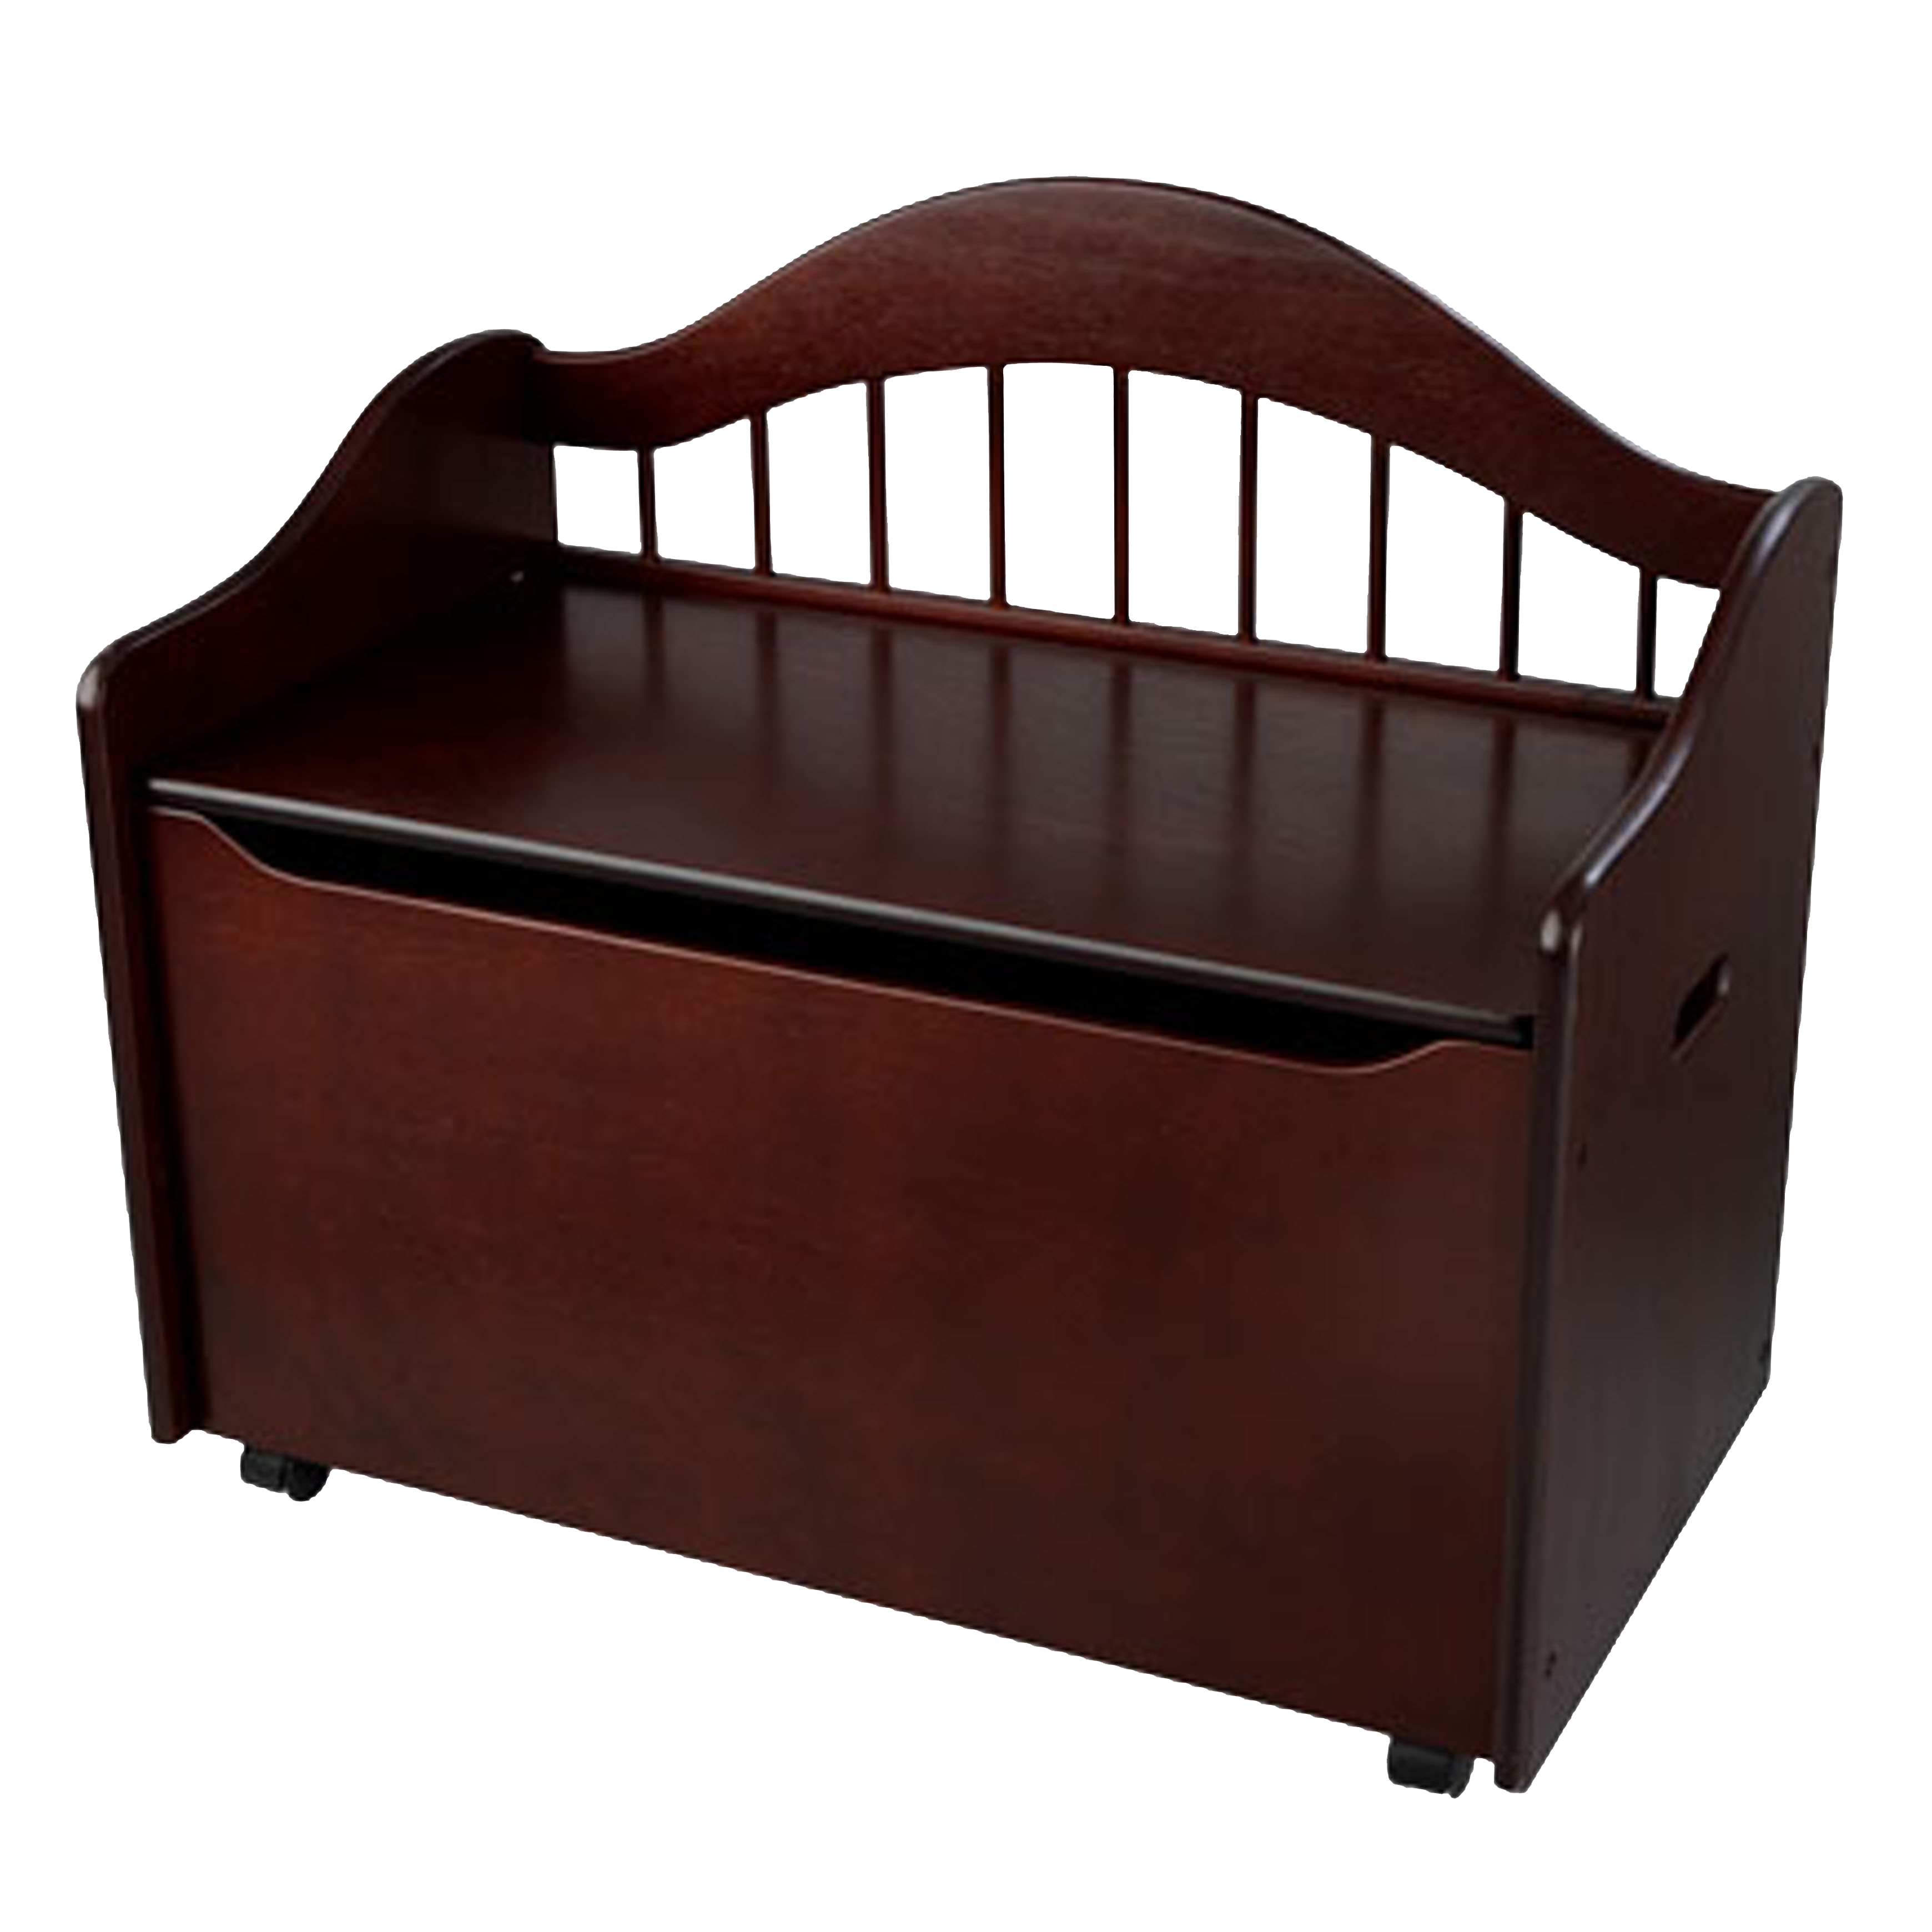 KidKraft Limited Edition Toy Box - Cherry